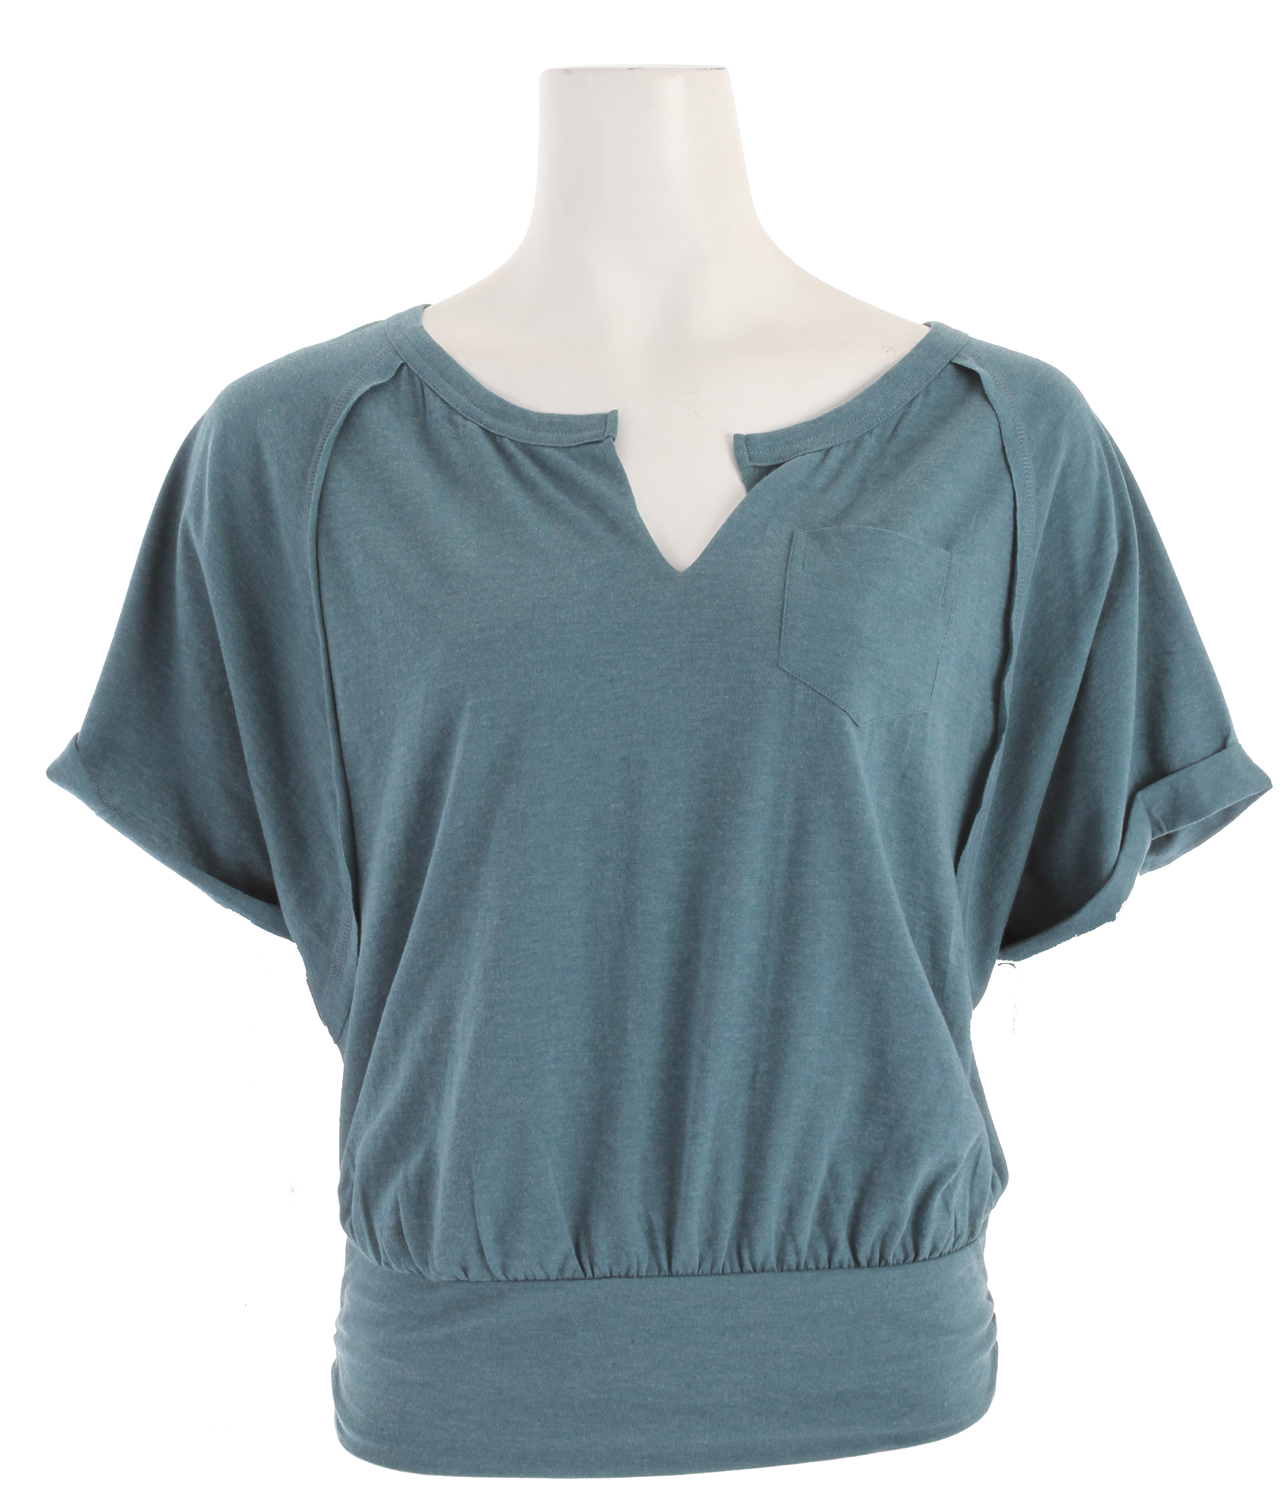 Key Features of the Prana Jessica Shirt: Lightweight jersey Scooped neckline with raw cut slash Rolled raglan sleeve Single front pocket Cut out back detail Shirred waist with band - $38.95